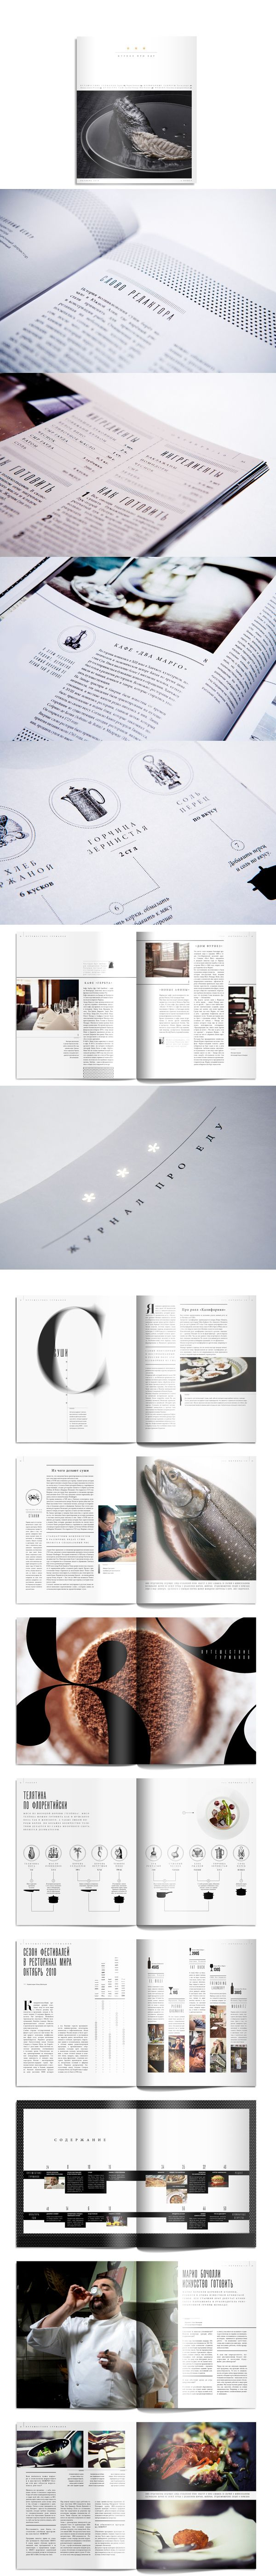 Three stars Food Magazine Editorial Design